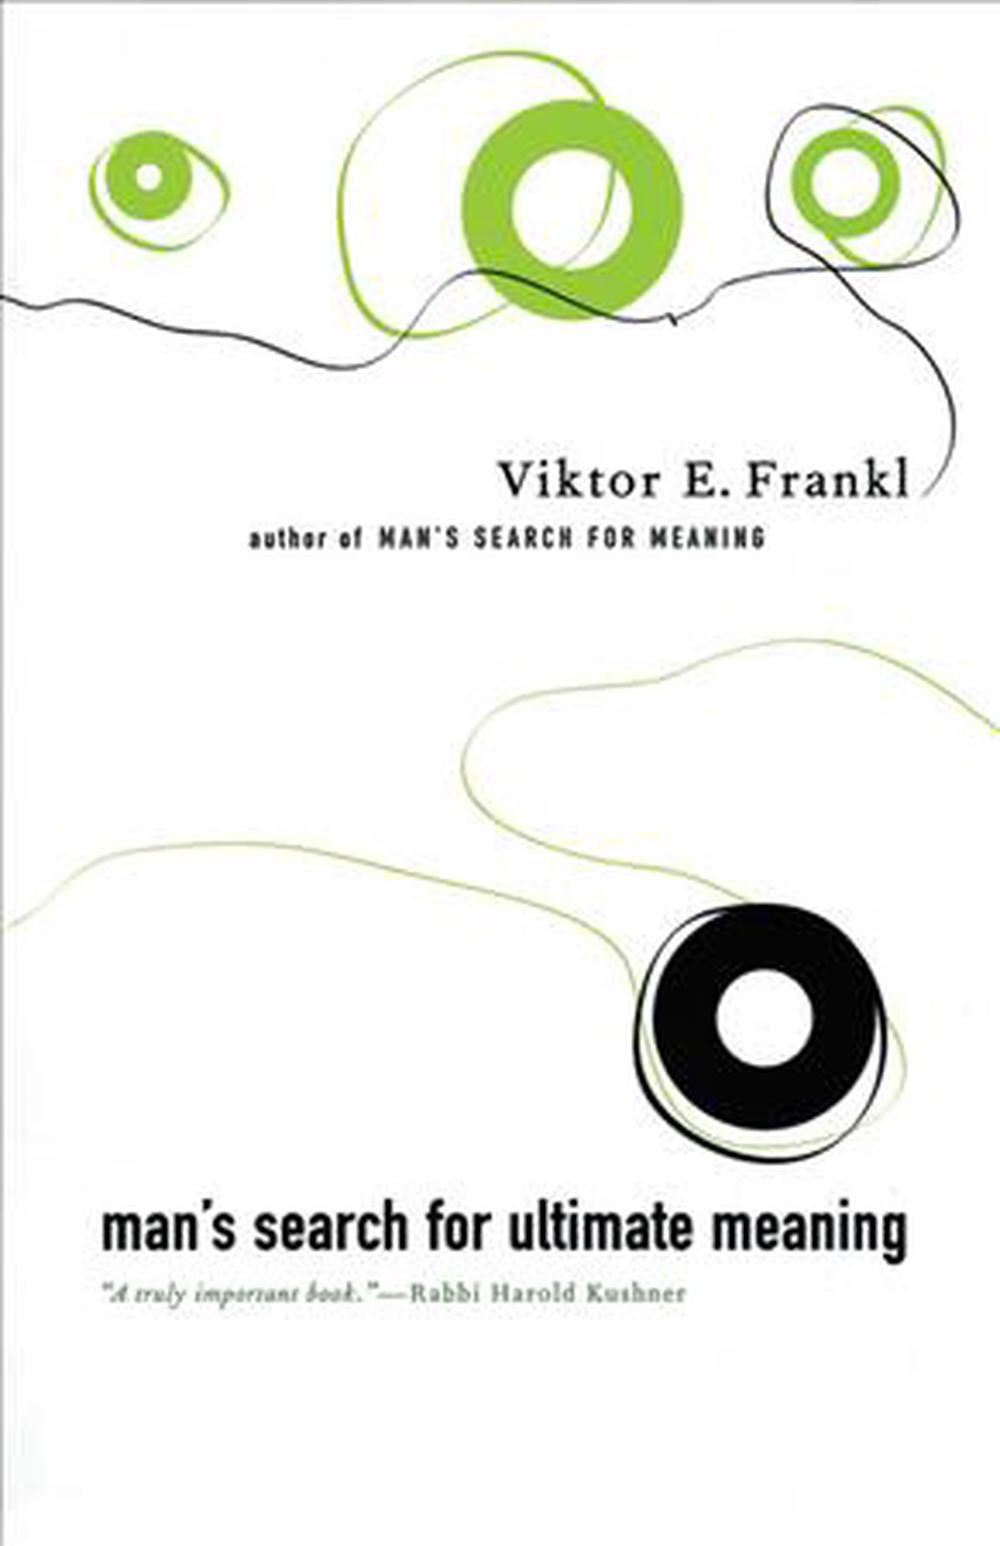 the meaning of suffering in mans search for meaning a book by viktor frankl Viktor frankl on man's search for meaning  in his awe-inspiring book about his  experiences in a concentration camp, man's search for  for tears bore witness  that a man had the greatest courage, the courage to suffer.